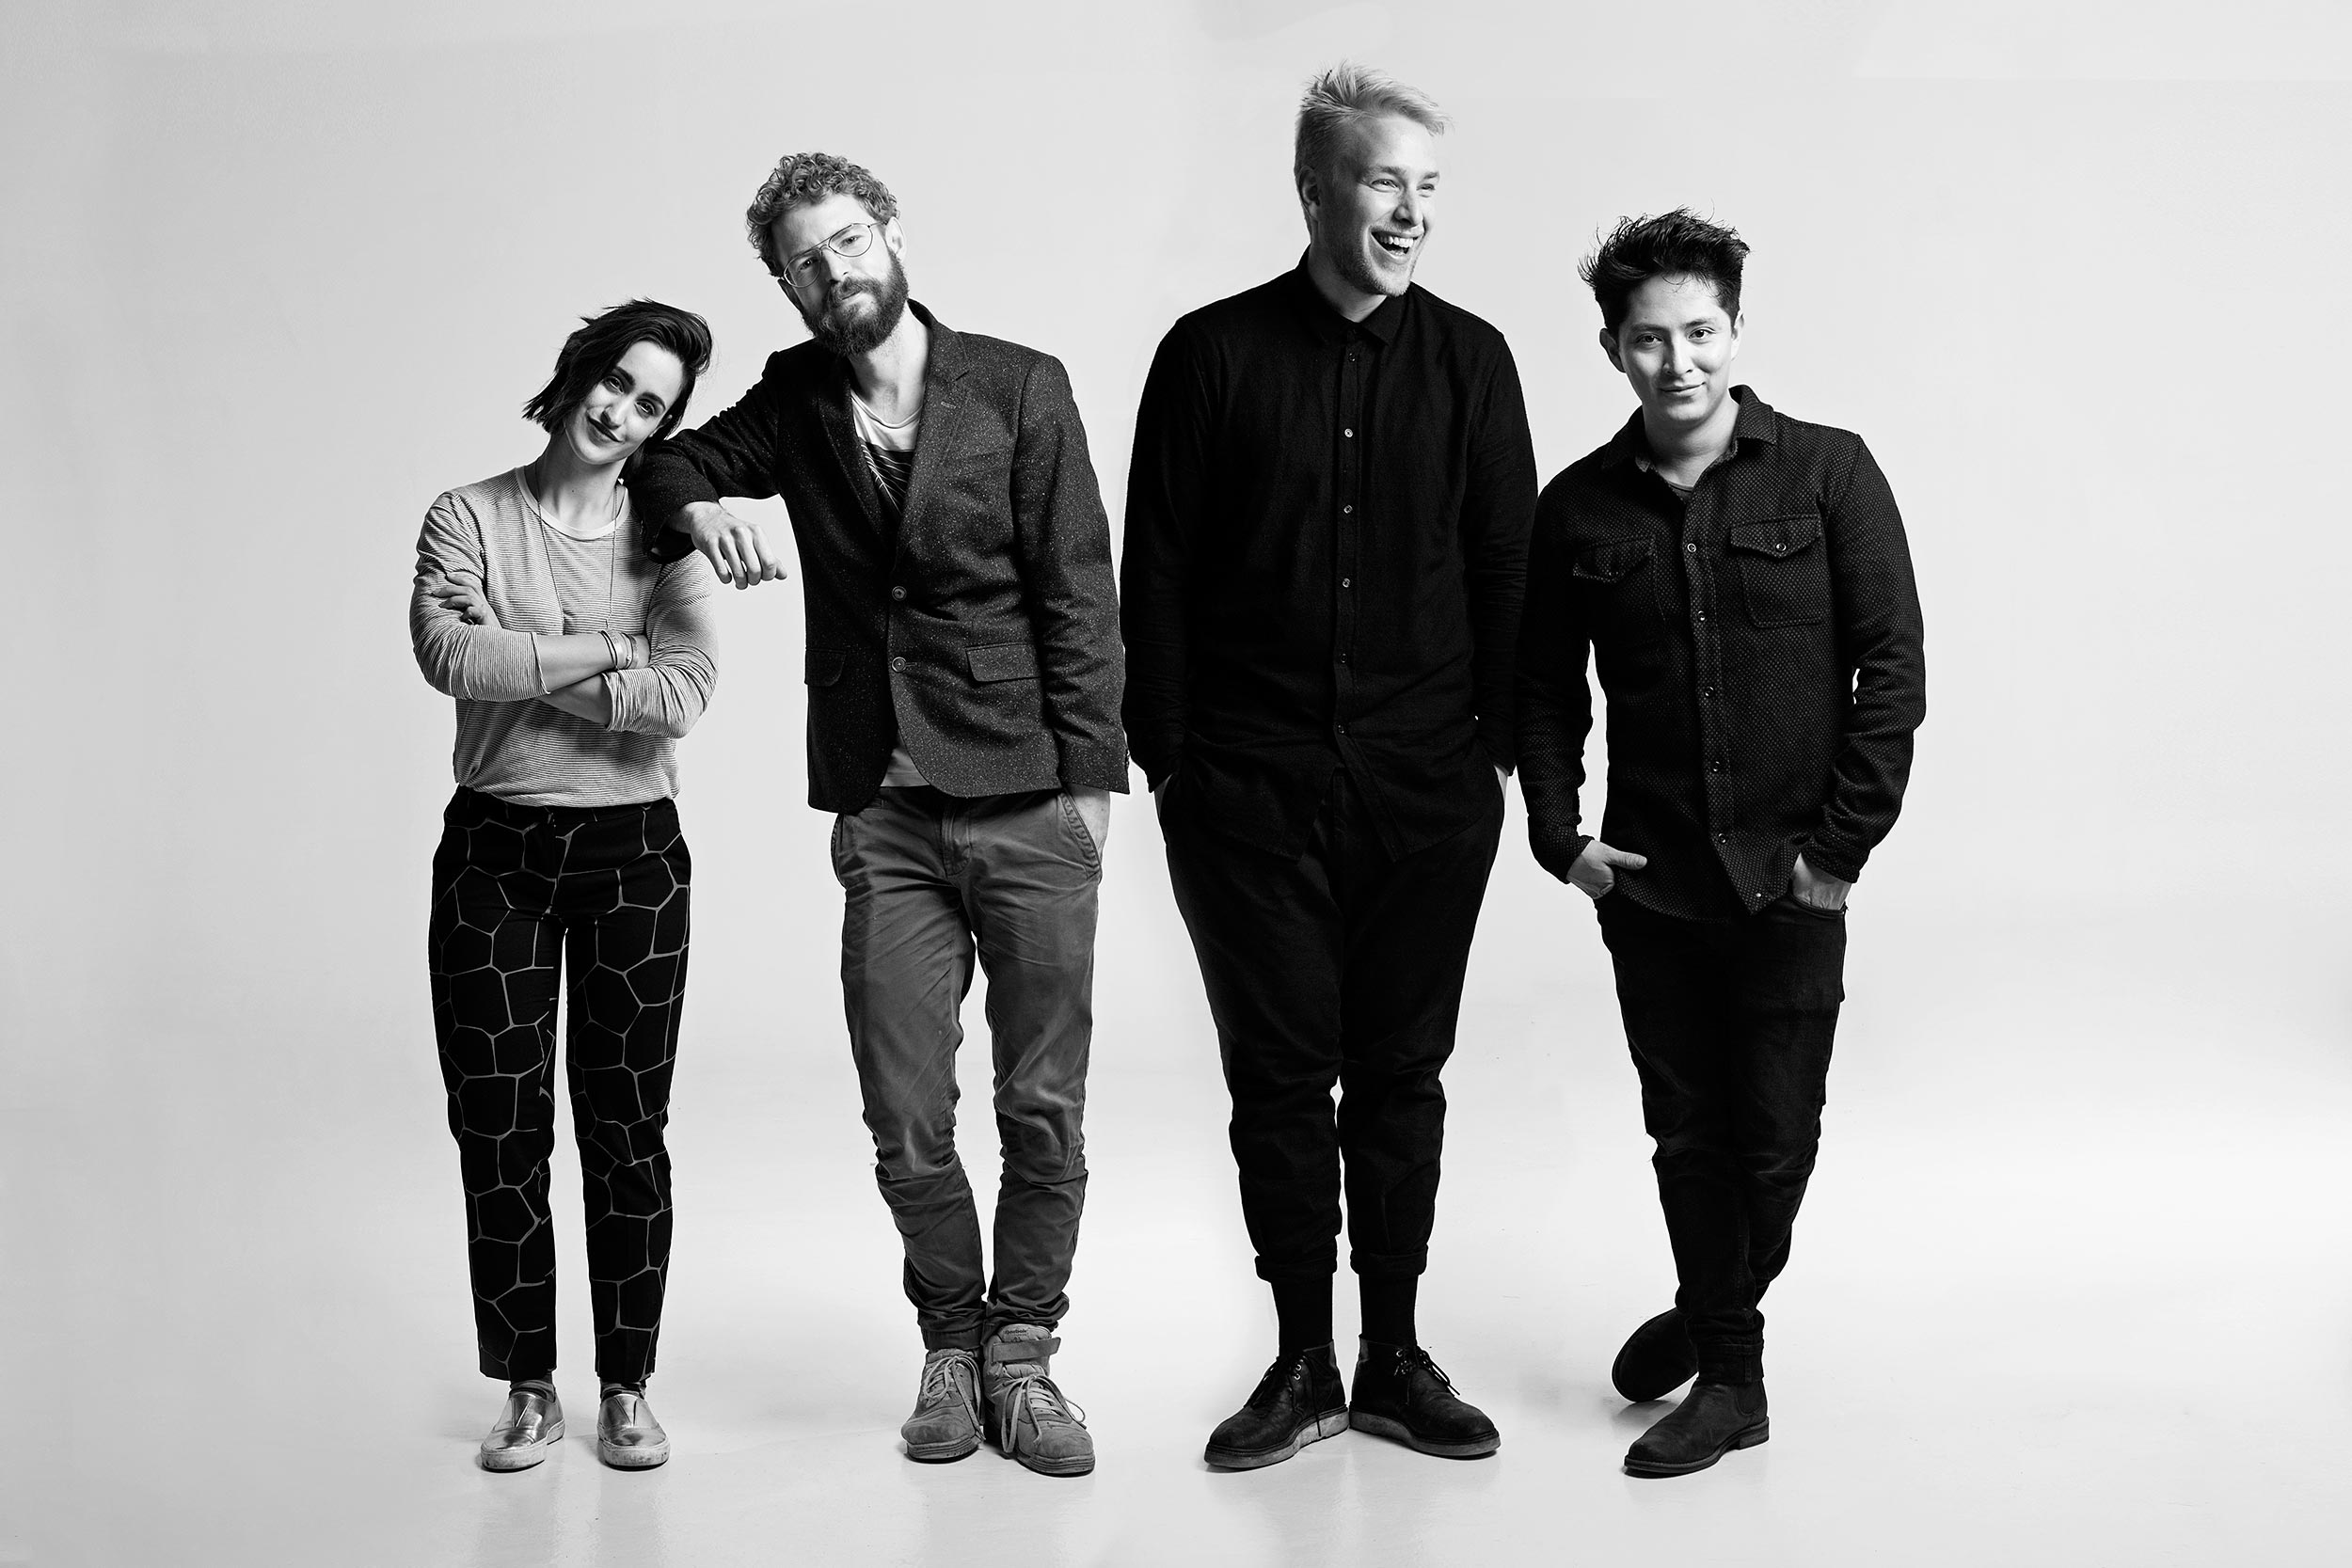 Anastasia Dimitriadis, Jonas Grøn, William Milsted and Emil Lyders - the entire team in the [etikede] project.